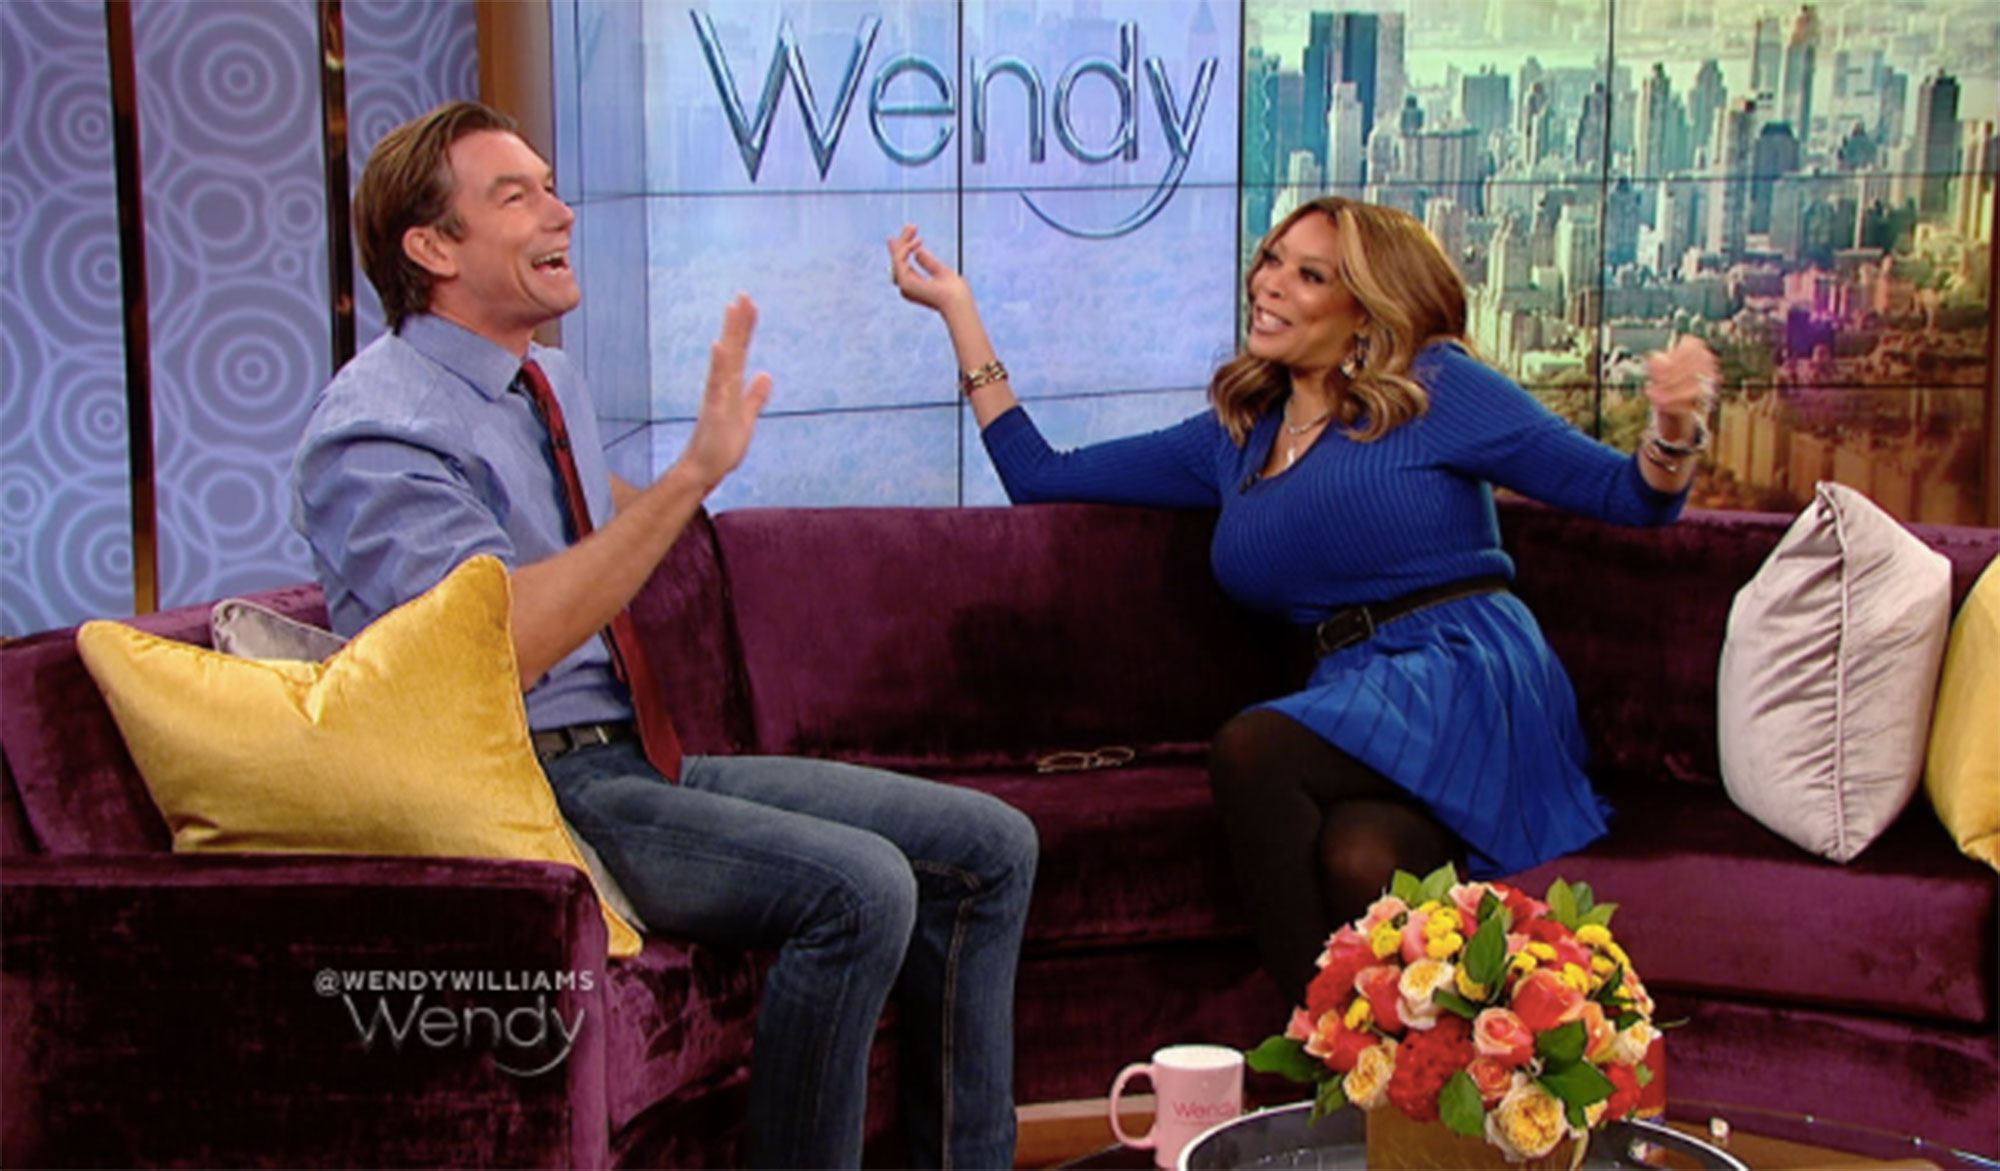 Wnedy WilliamsCourtesy Wendy Williams Show